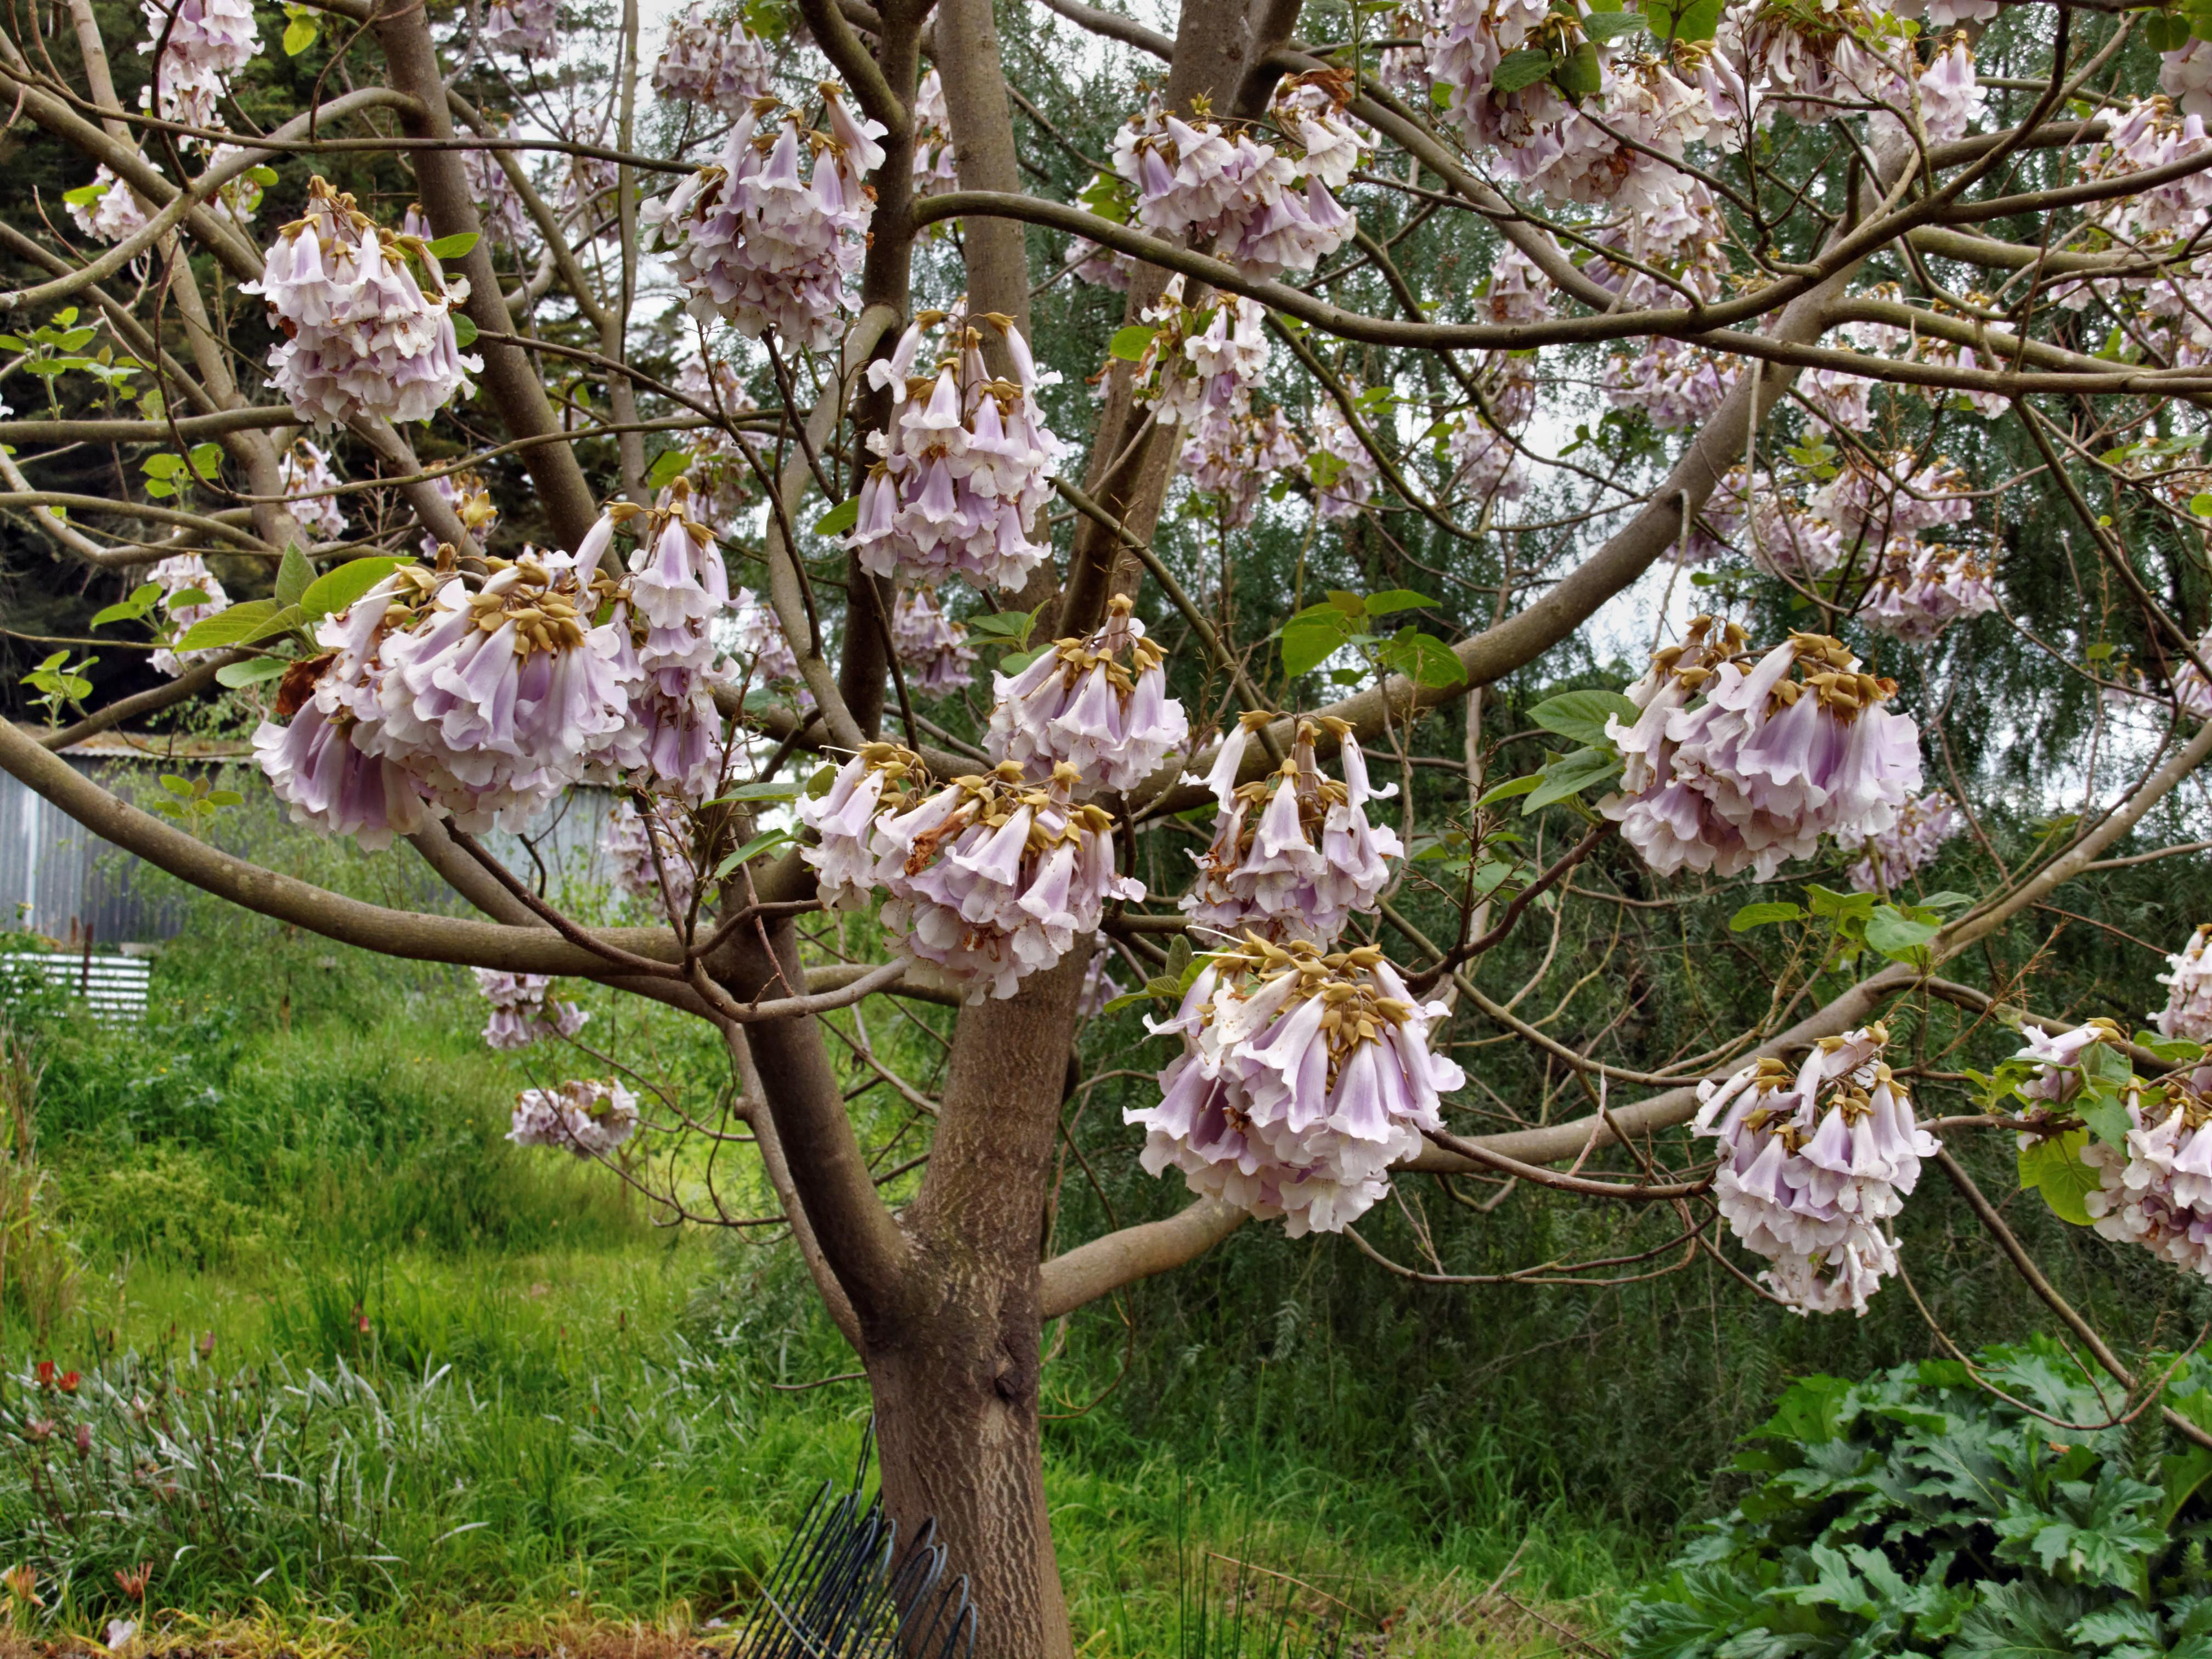 This should be Paulownia-1.jpeg.  Is it missing?